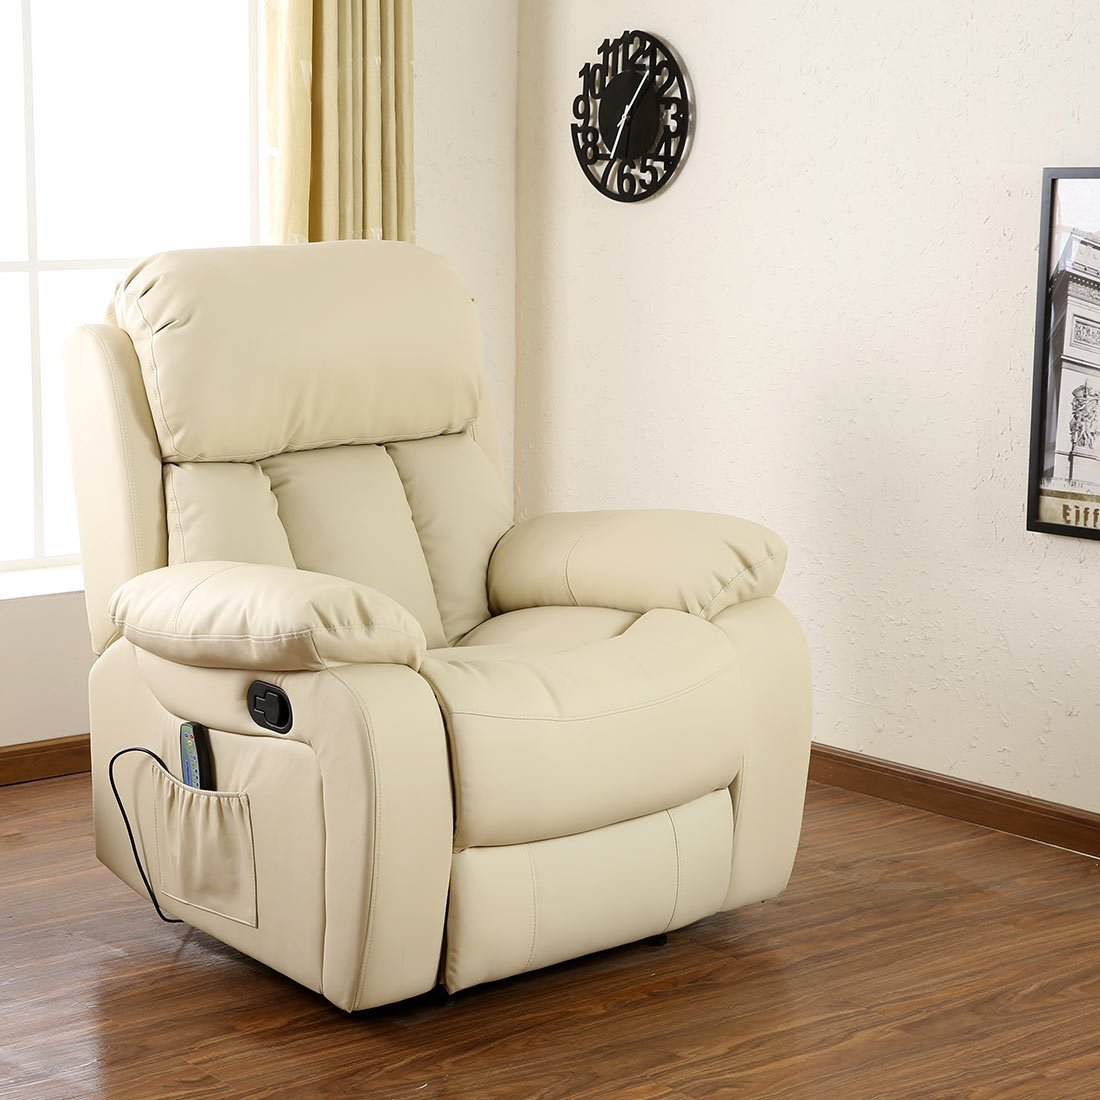 Chester Heated Leather Massage Recliner Chair Sofa Lounge Gaming  ~ Cream Leather Reclining Sofa